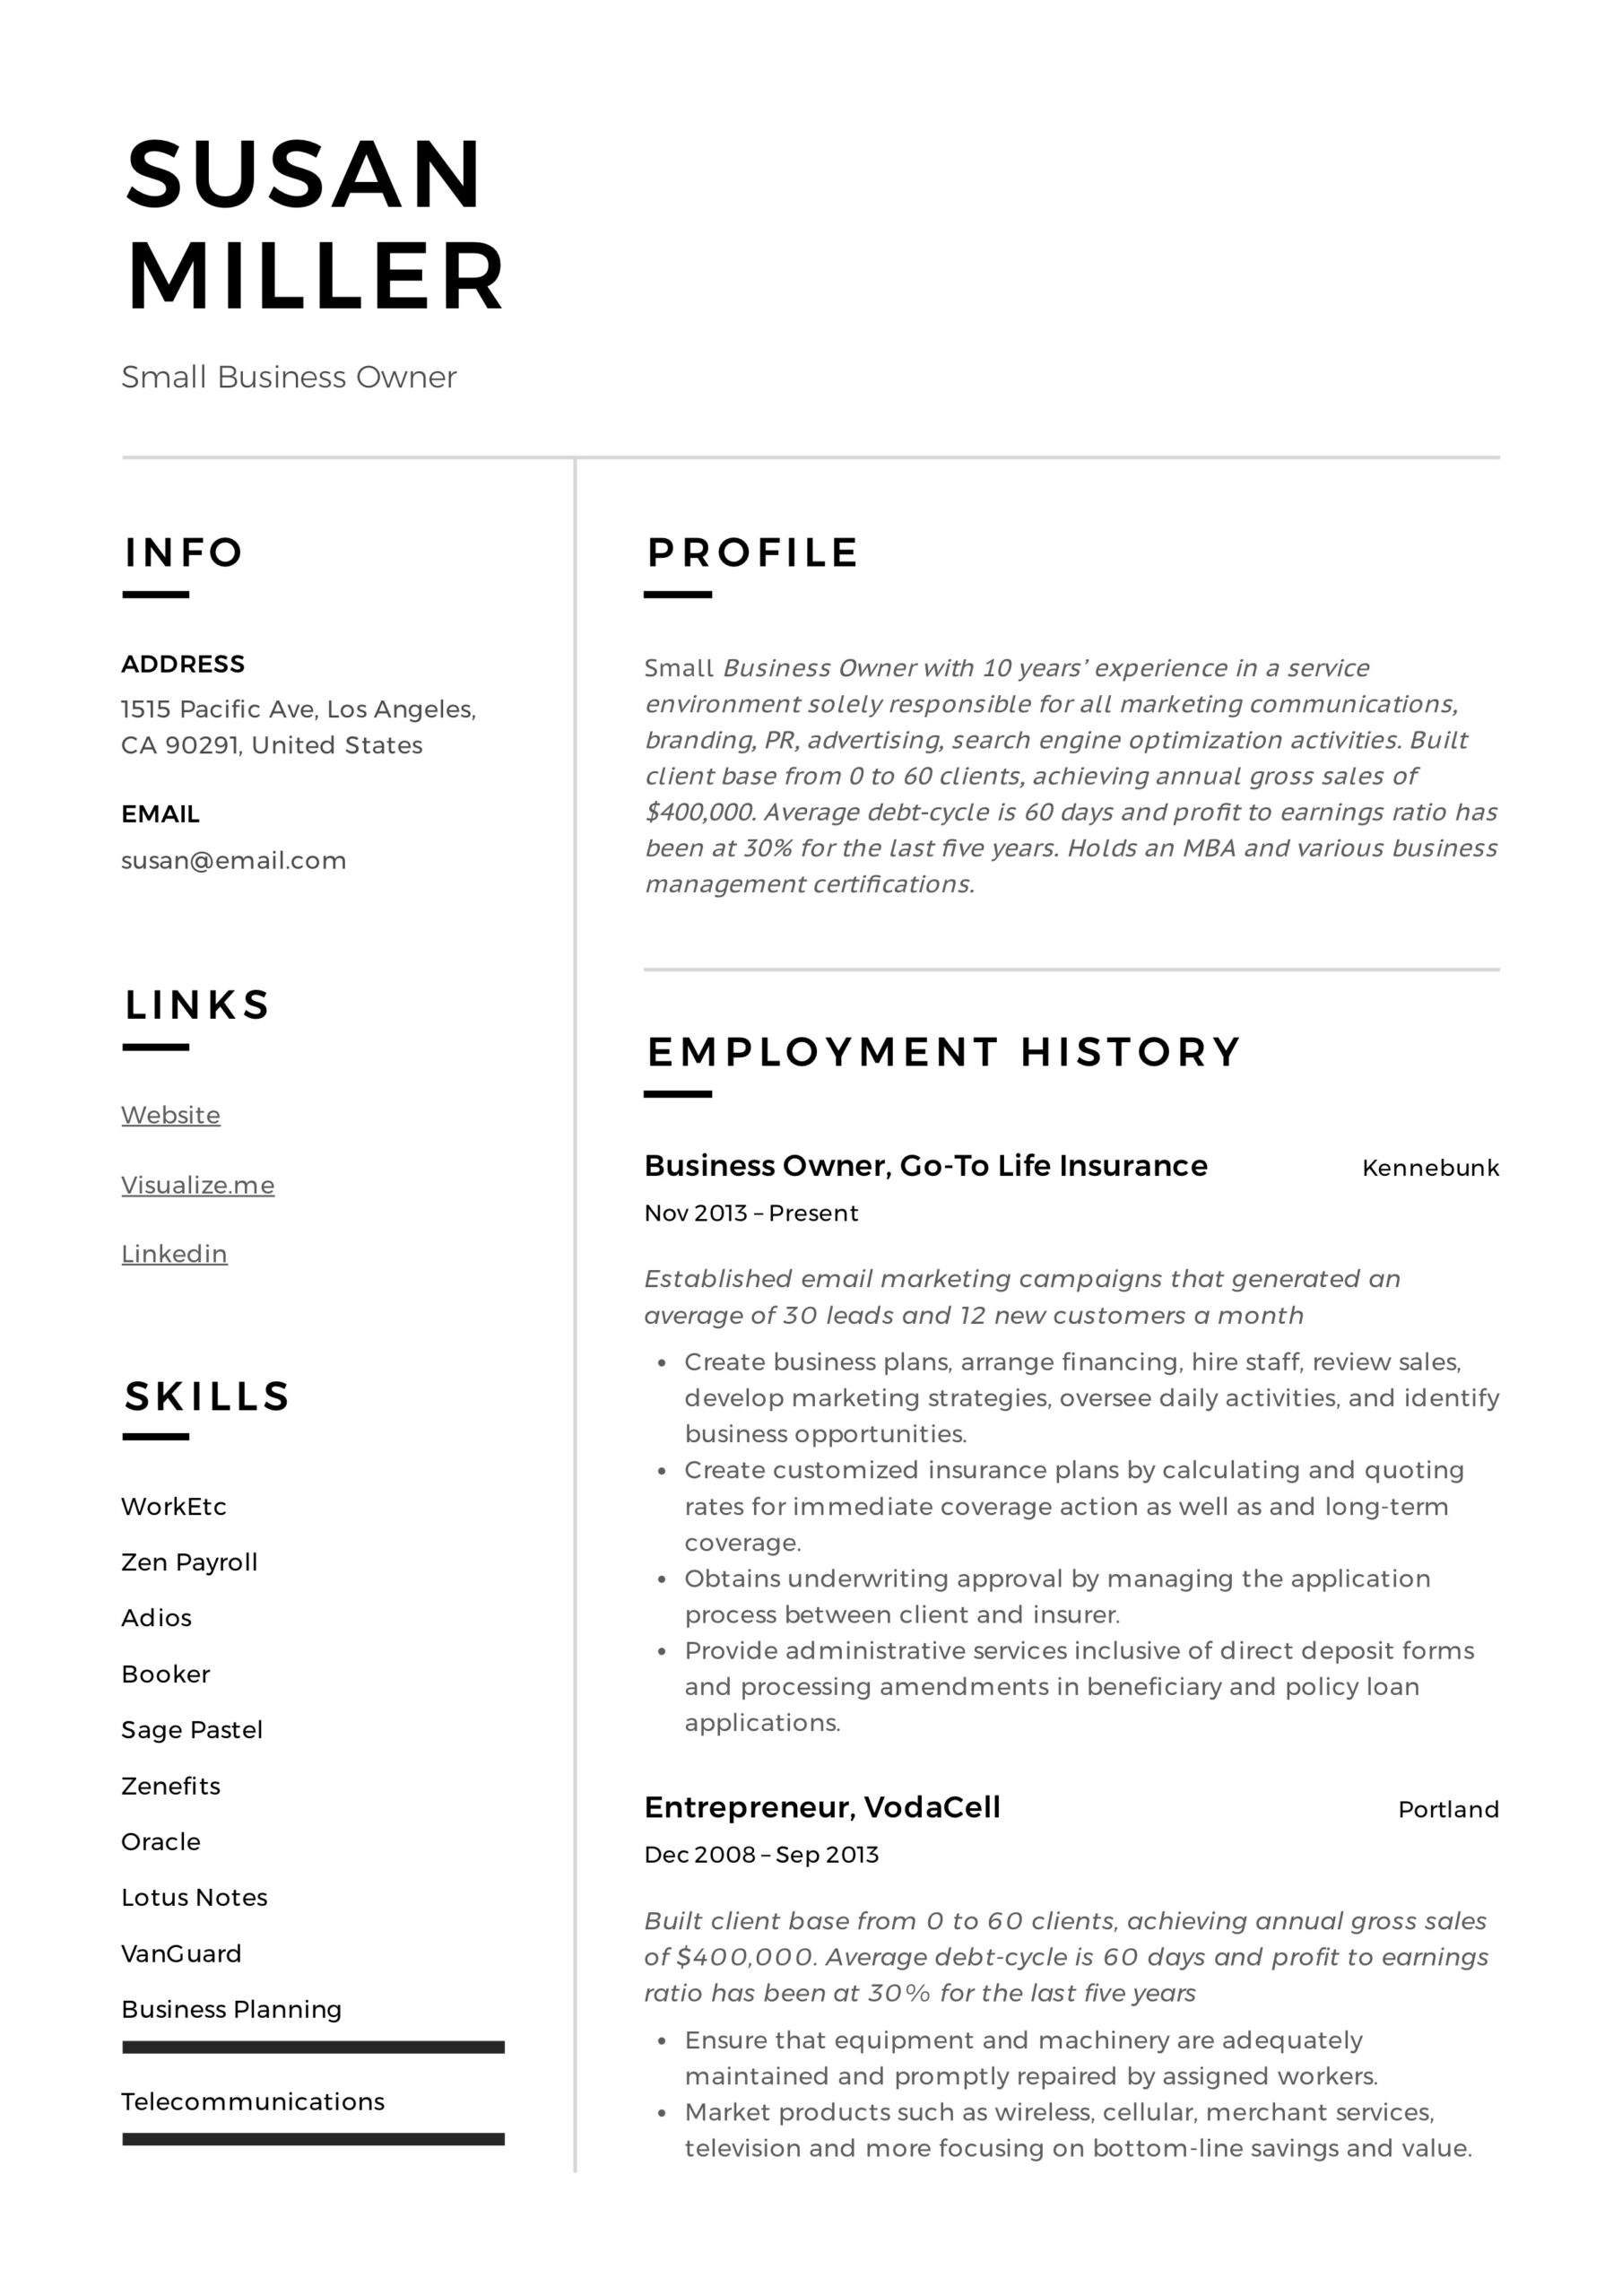 small business owner resume guide examples pdf job description example inside recruiter Resume Business Owner Job Description Resume